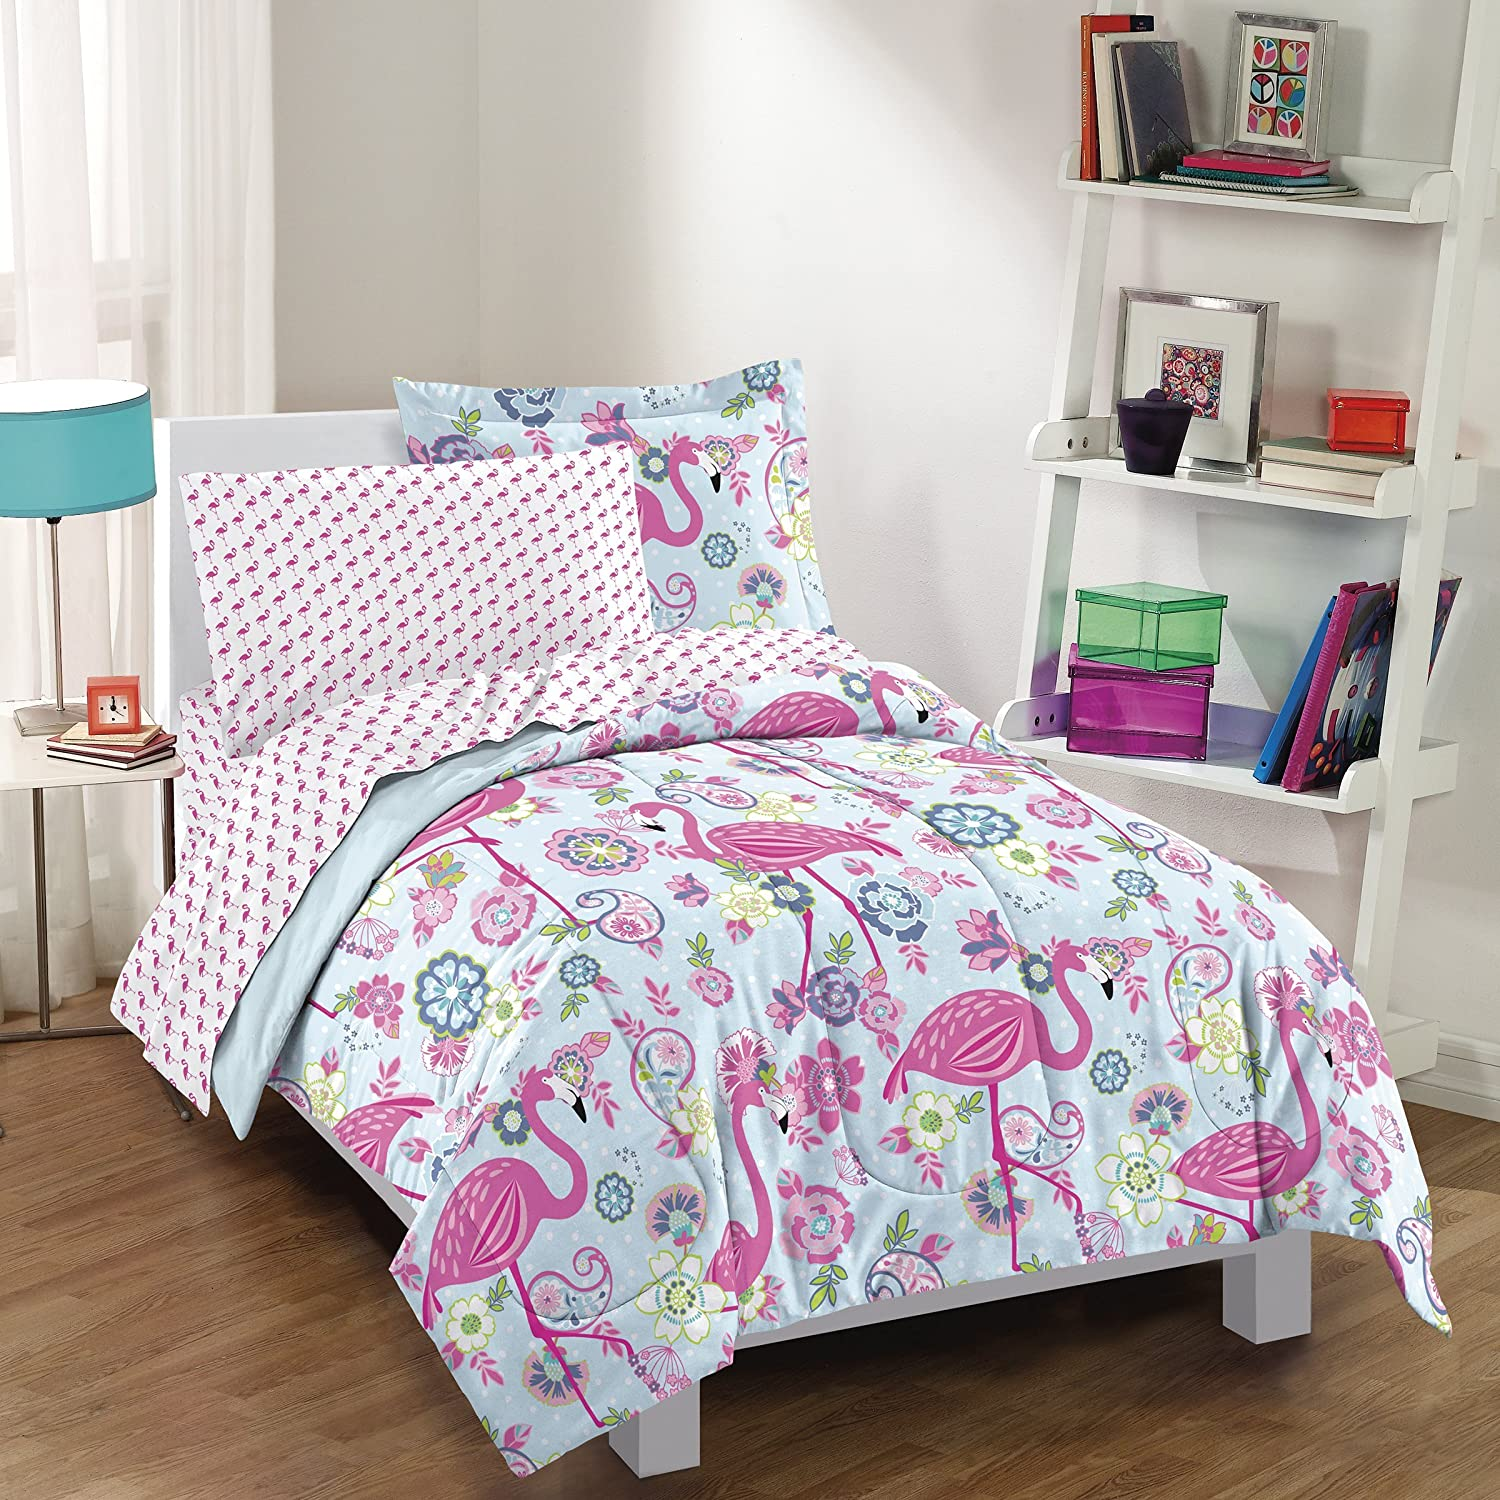 Dream Factory Flamingo Comforter Set, Pink, Full CHF Industries 2A852102PK